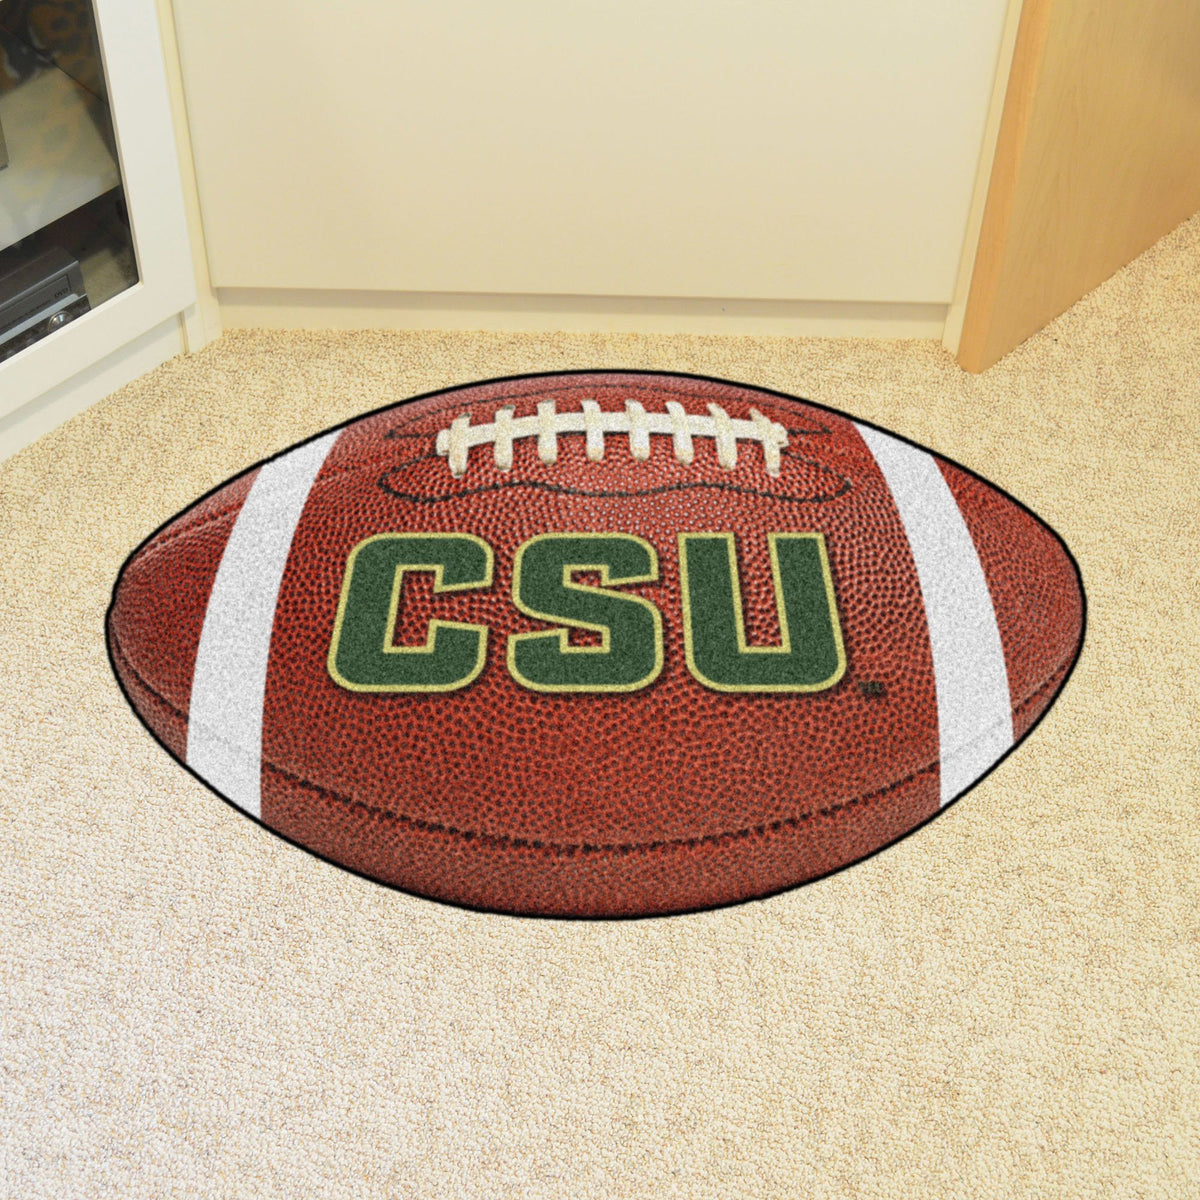 Collegiate - Football Mat: A - K Collegiate Mats, Rectangular Mats, Football Mat, Collegiate, Home Fan Mats Colorado State